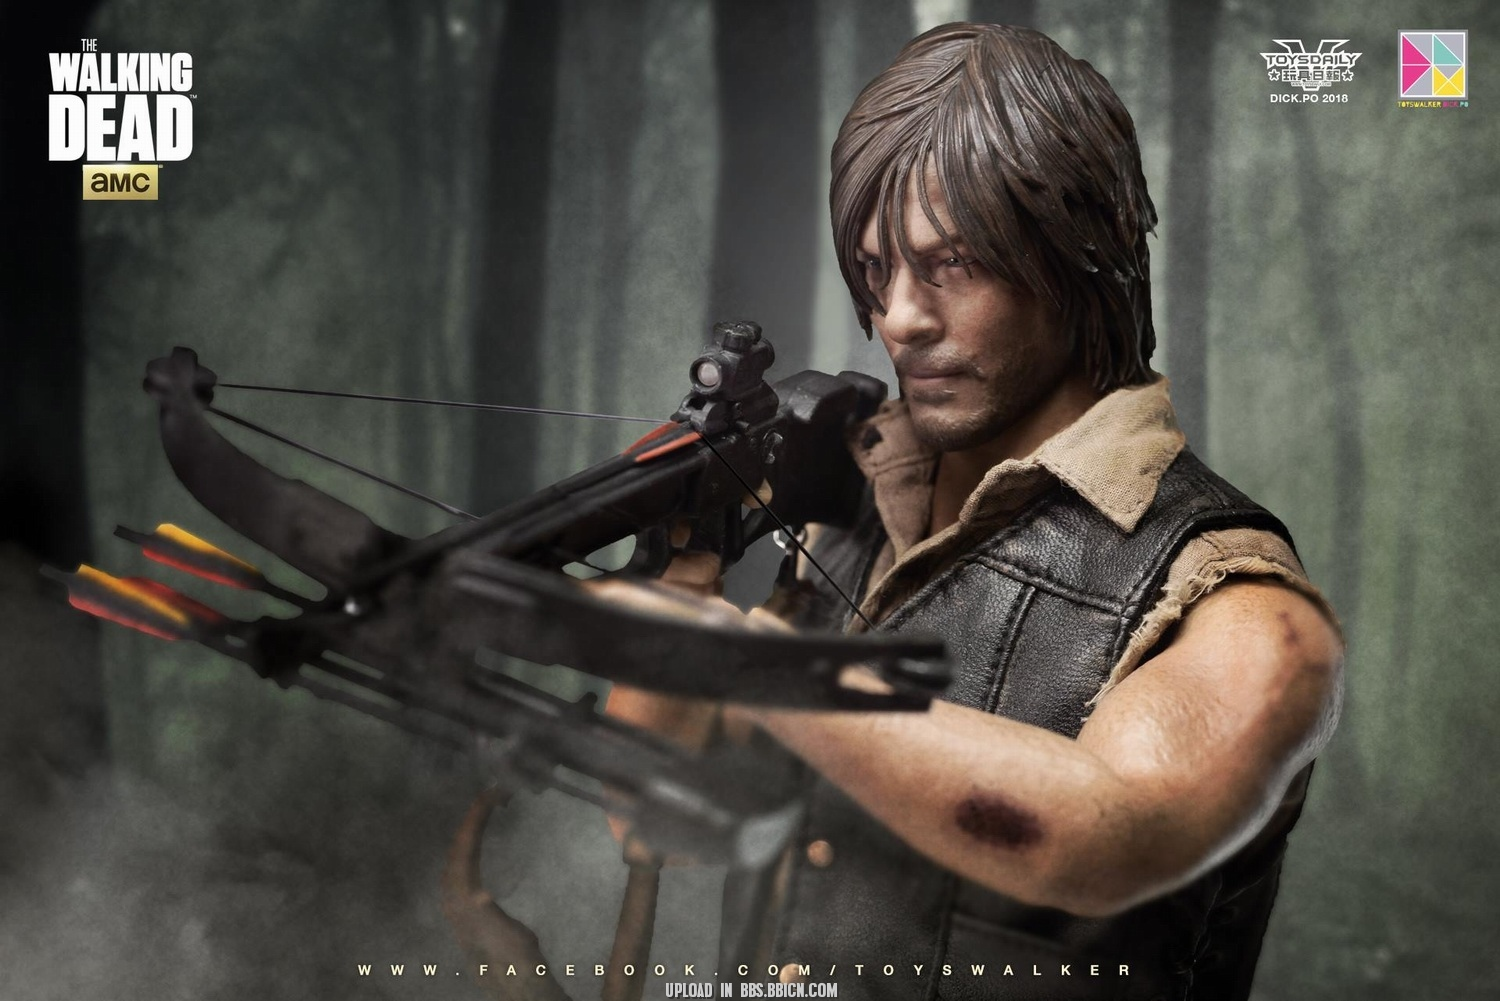 The Walking Dead Daryl Dixon7.jpg